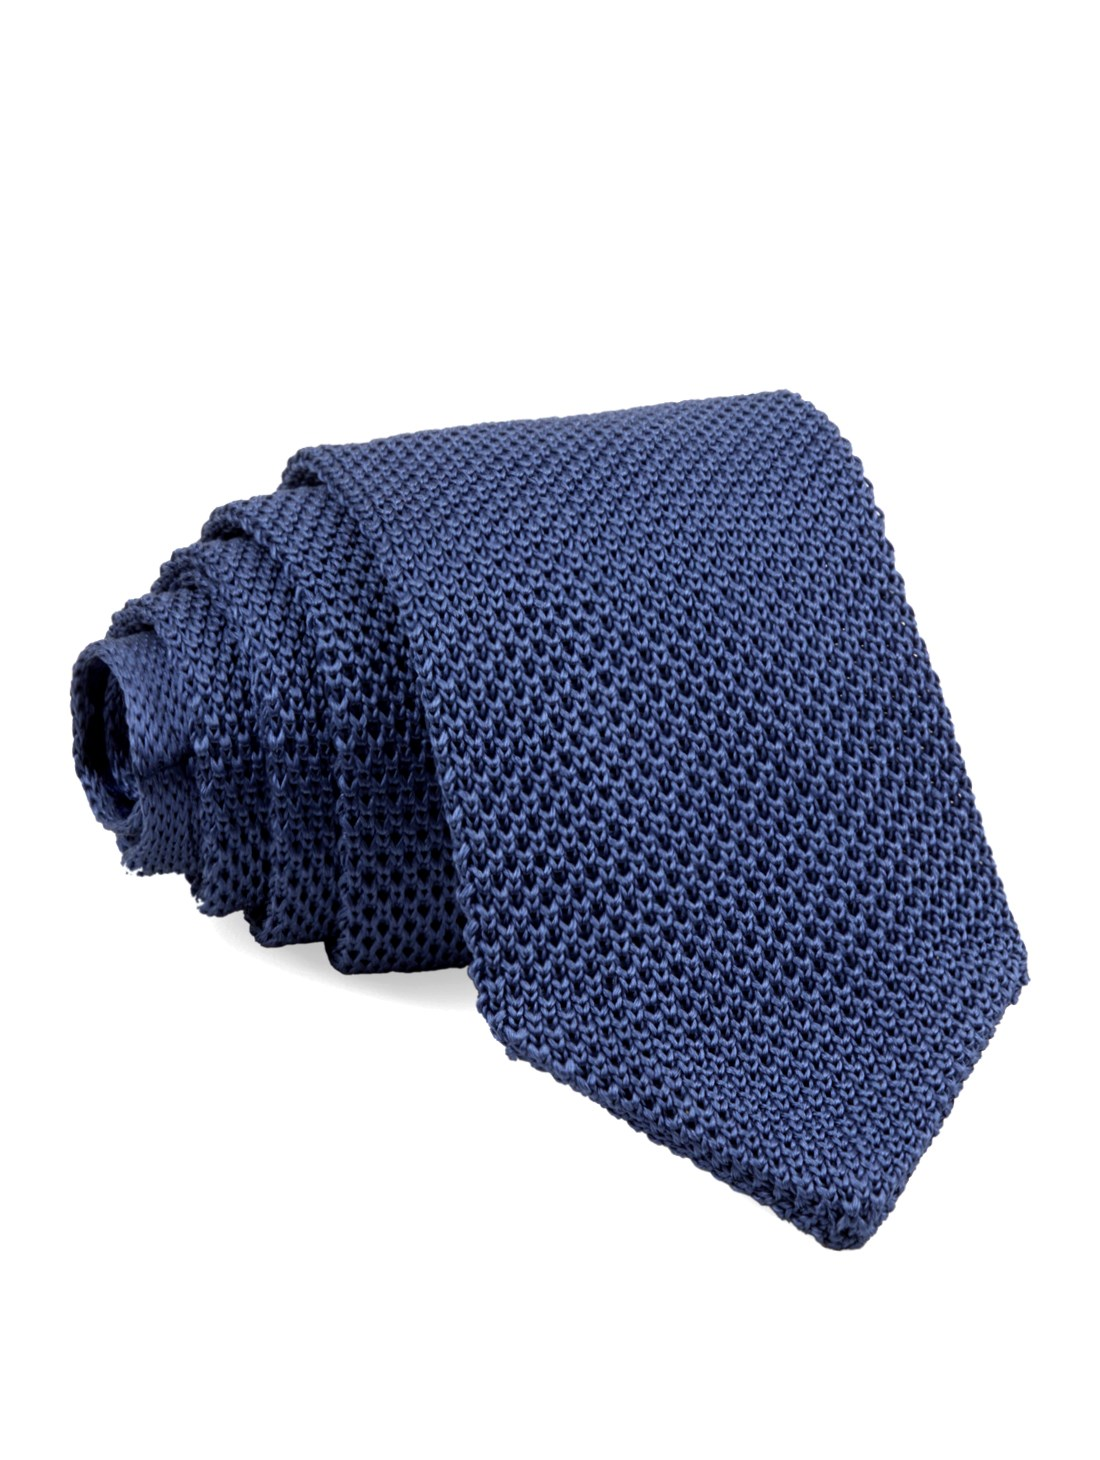 Silk Knit Ties - Handmade Silk Knit Ties - Knit Silk Neckties - Knit ...